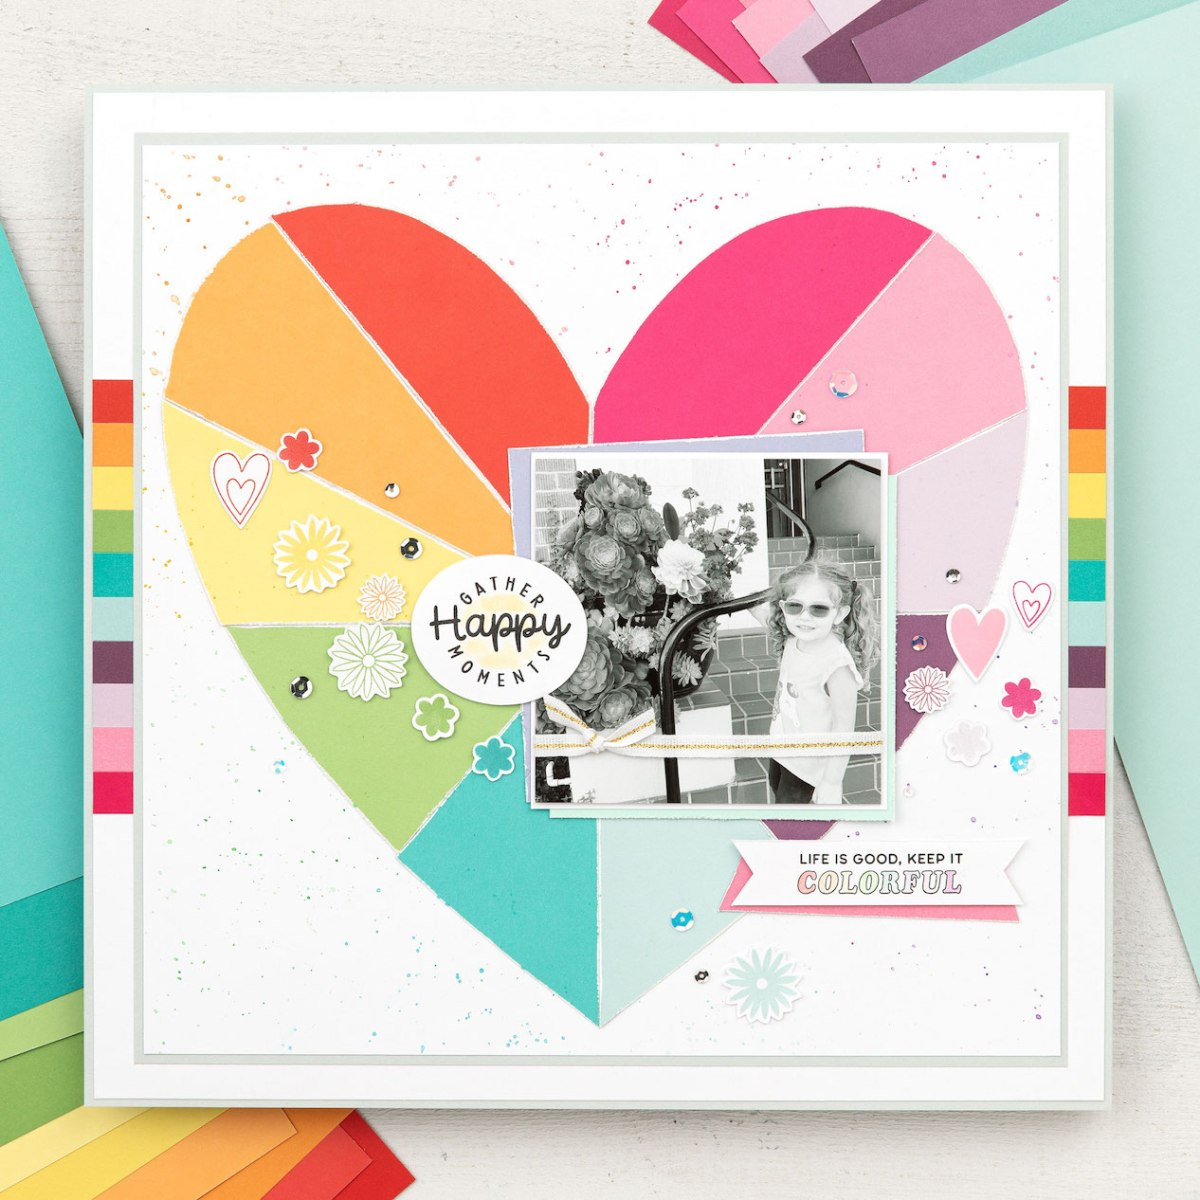 Cardstock Carnival #ctmh #closetomyheart #cardstock #exclusivecolorpalette #exclusivecolourpalatte #ctmhcolors #cmthcolours #heart #scrapbook #lifeisfullofcolor #lifeisfullofcolour